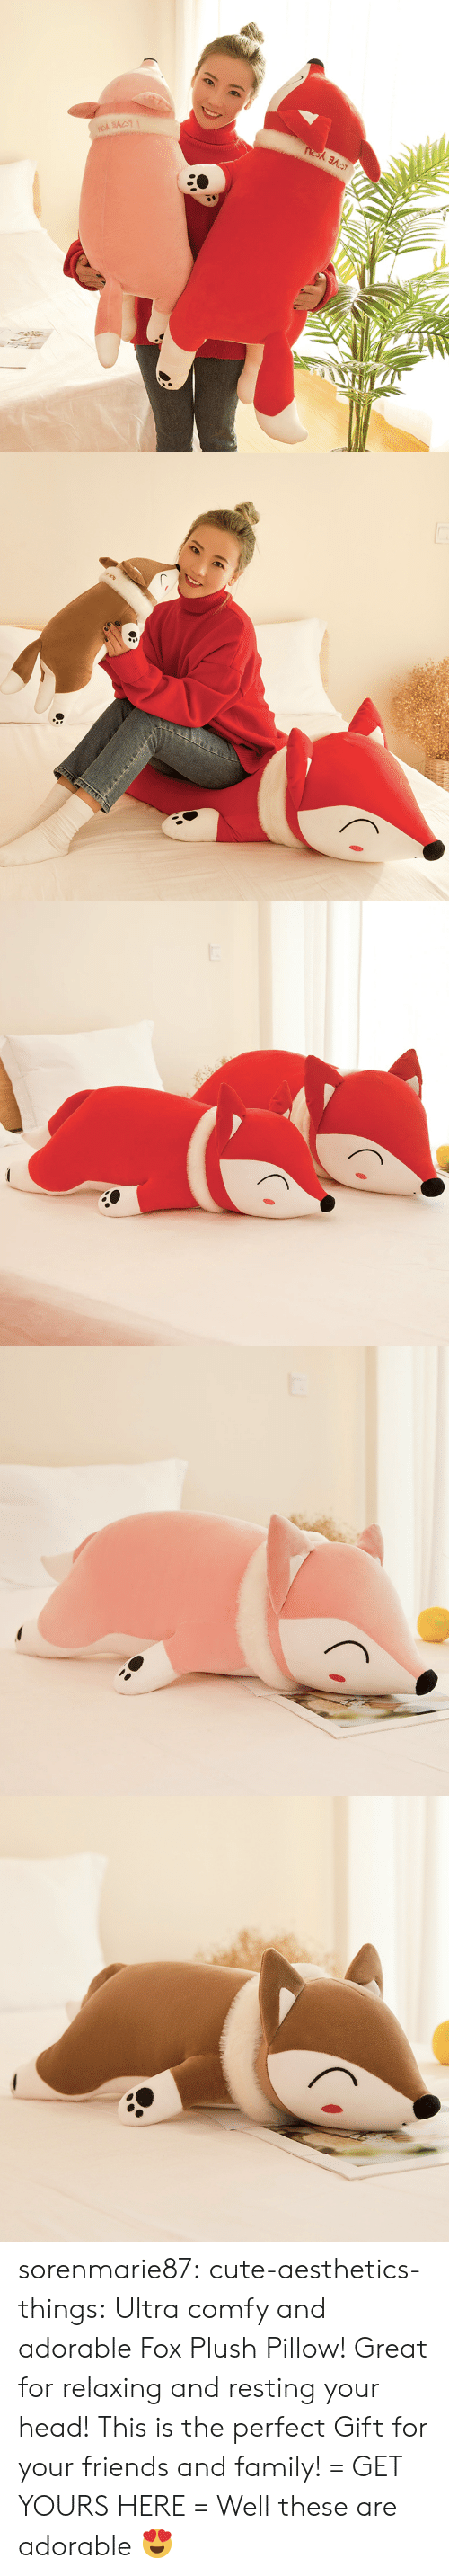 plush: sorenmarie87:  cute-aesthetics-things:  Ultra comfy and adorable Fox Plush Pillow! Great for relaxing and resting your head! This is the perfect Gift for your friends and family! = GET YOURS HERE =   Well these are adorable 😍